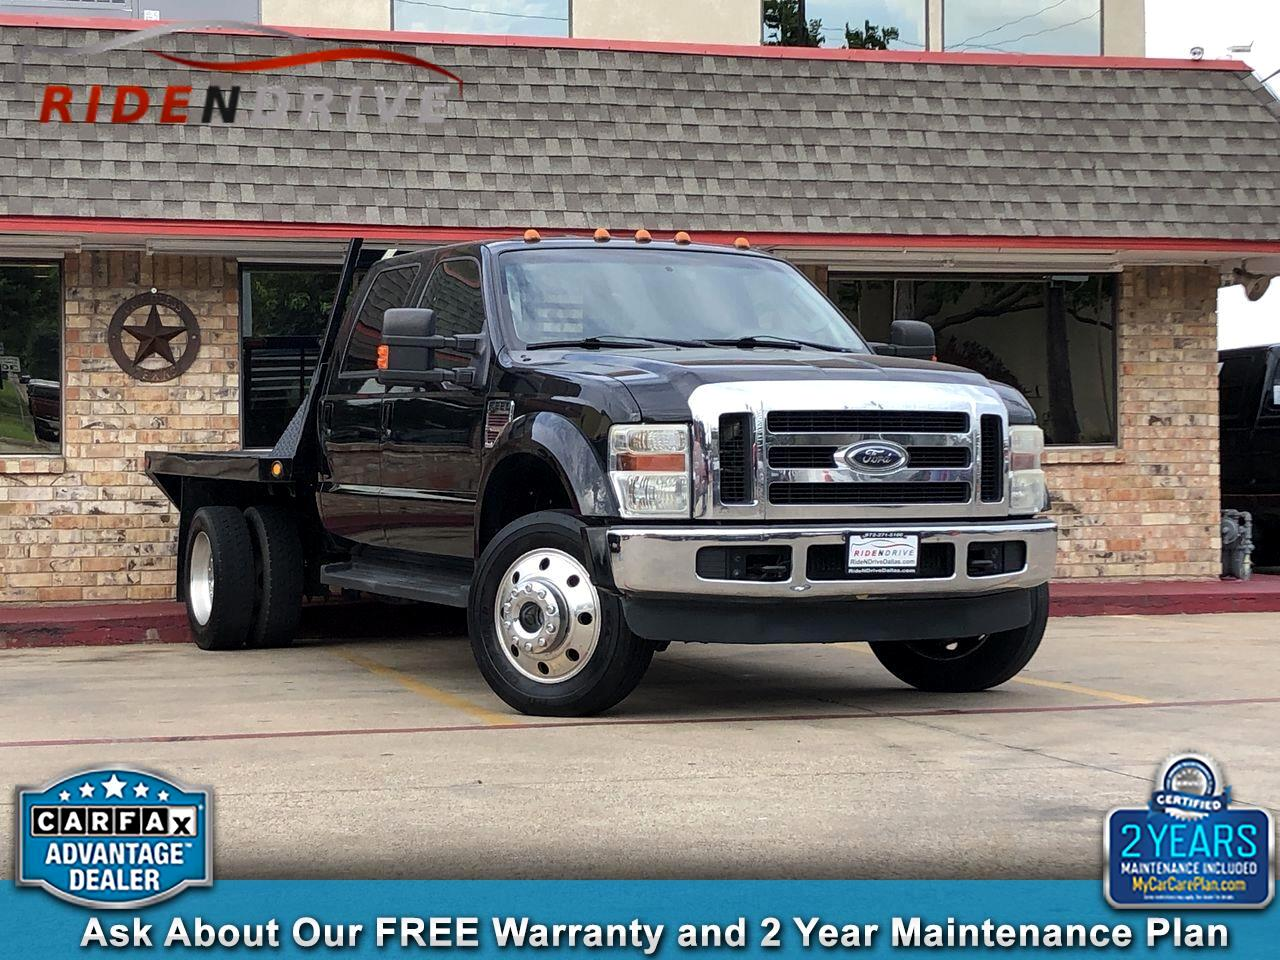 2008 Ford Super Duty F-550 DRW 4WD Crew Cab 176